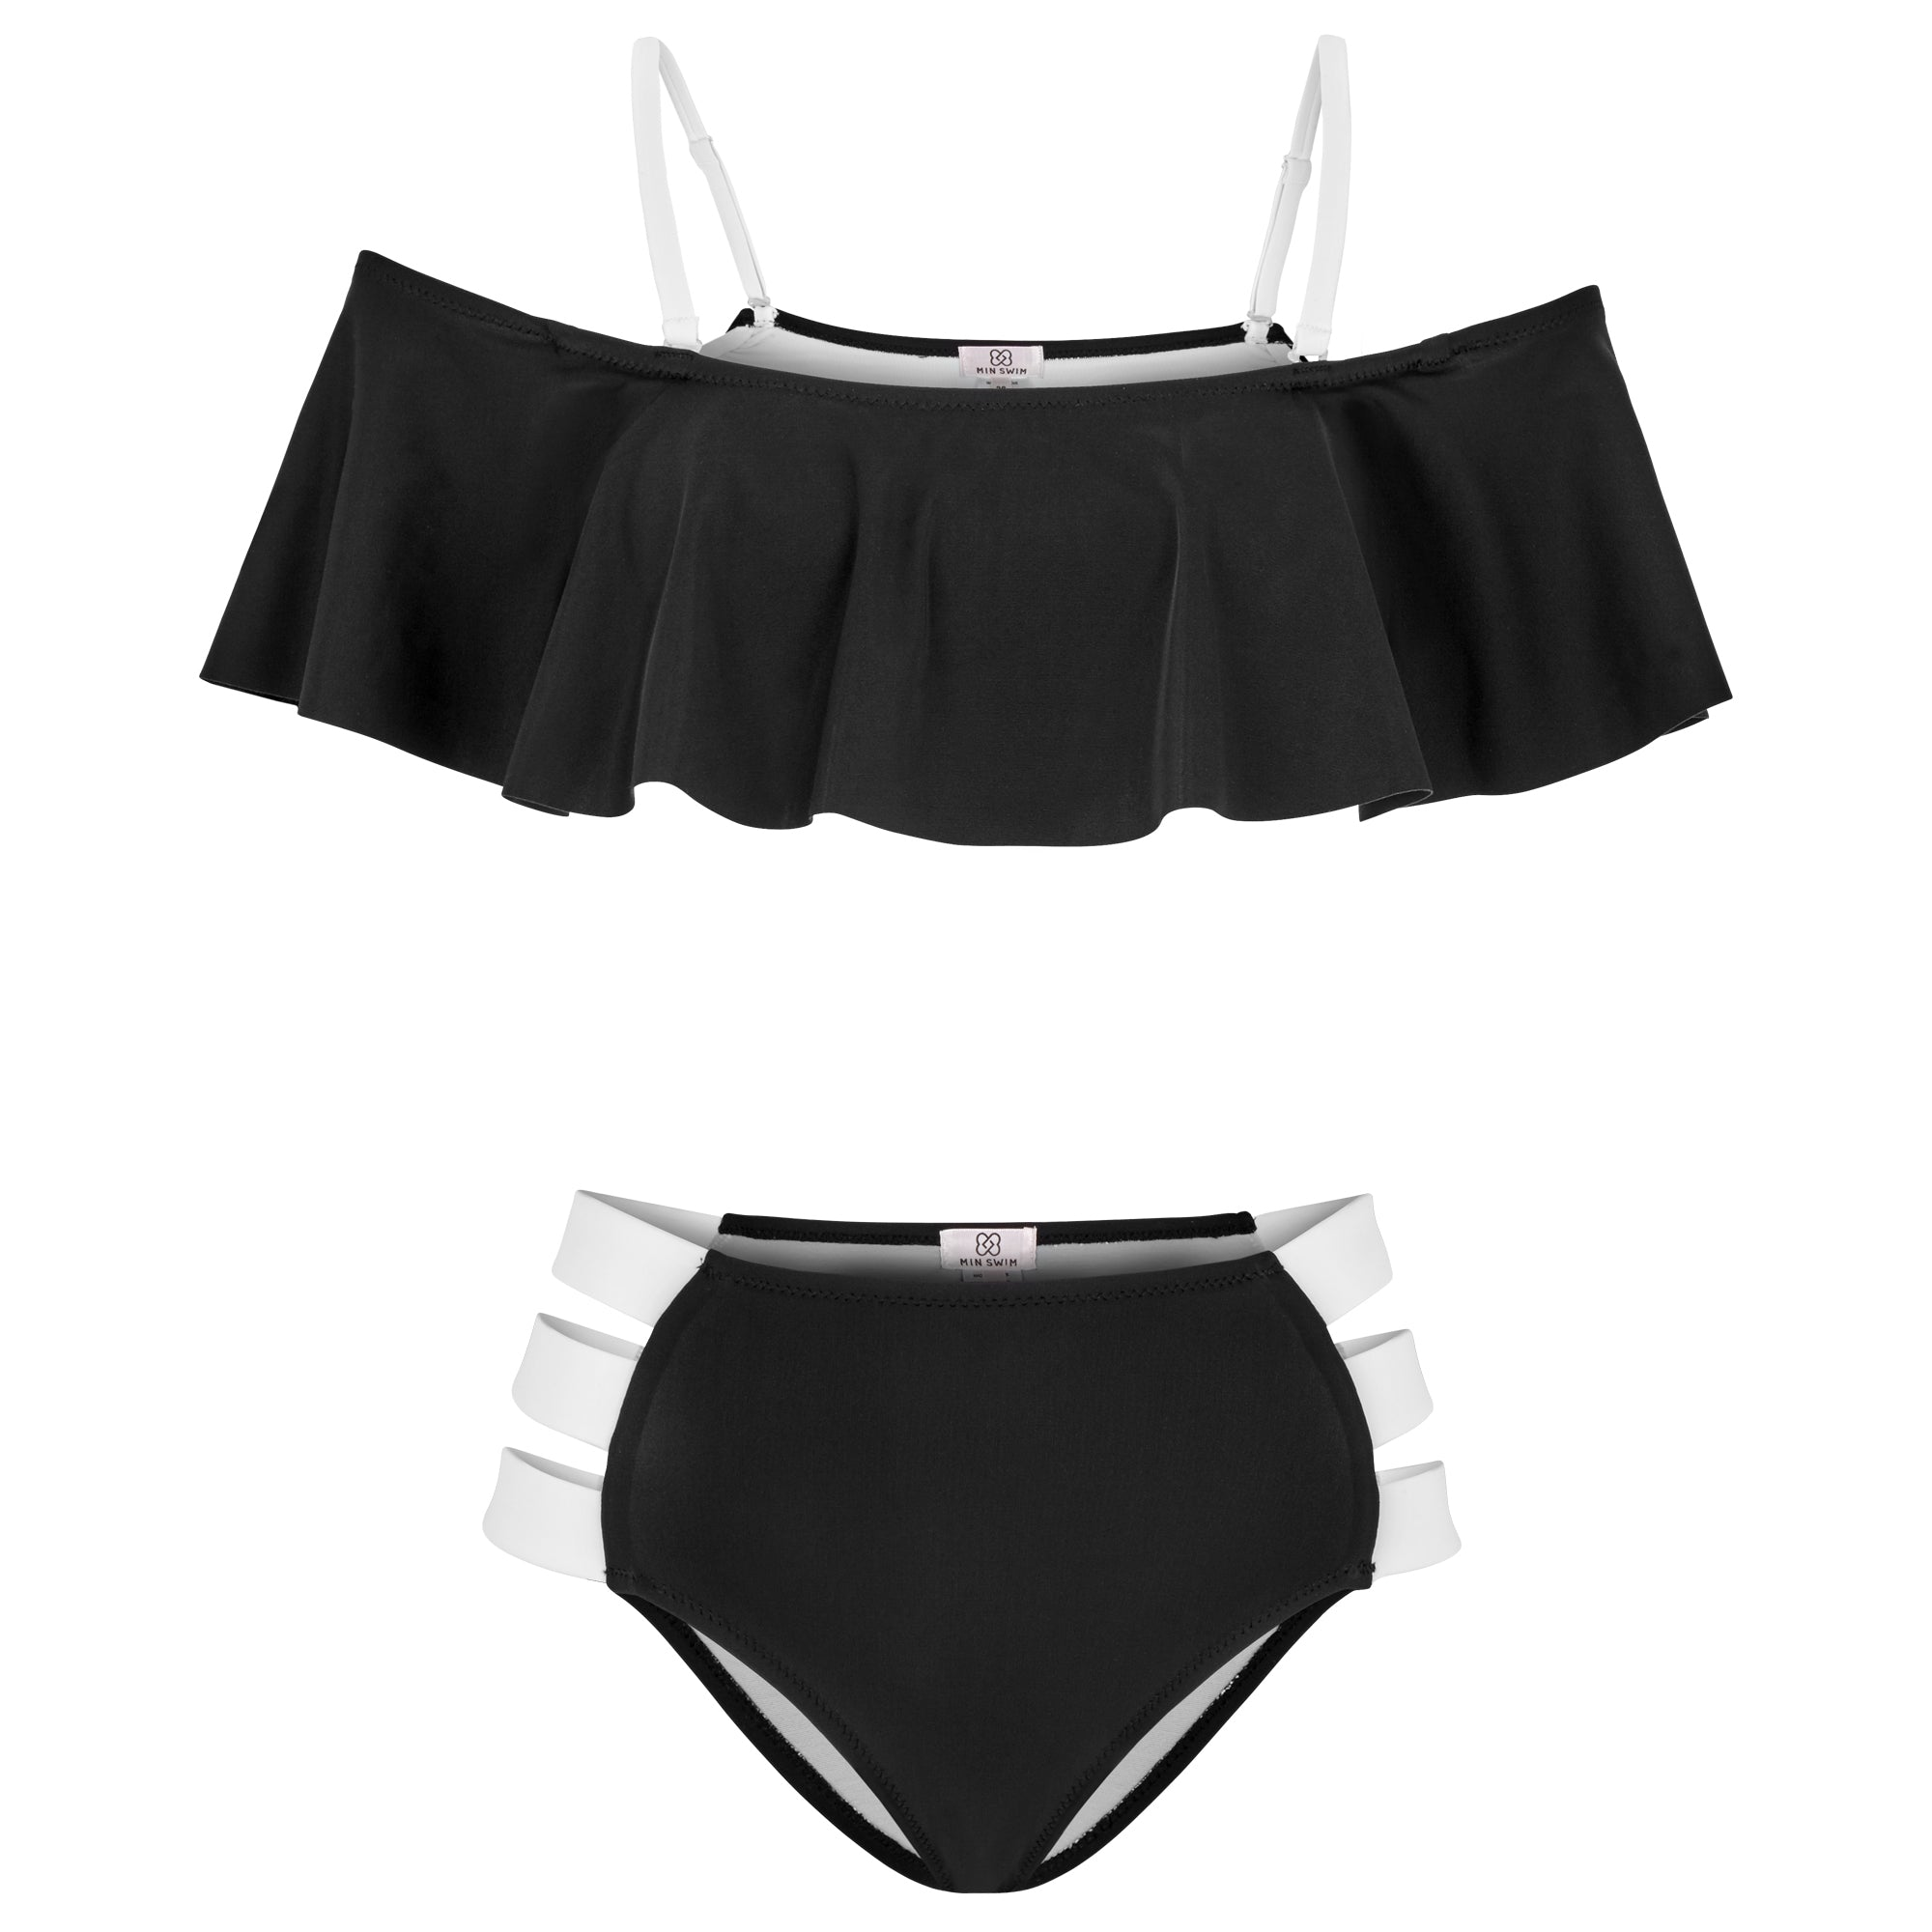 MALIBU PARADISE WOMEN - BLACK/WHITE